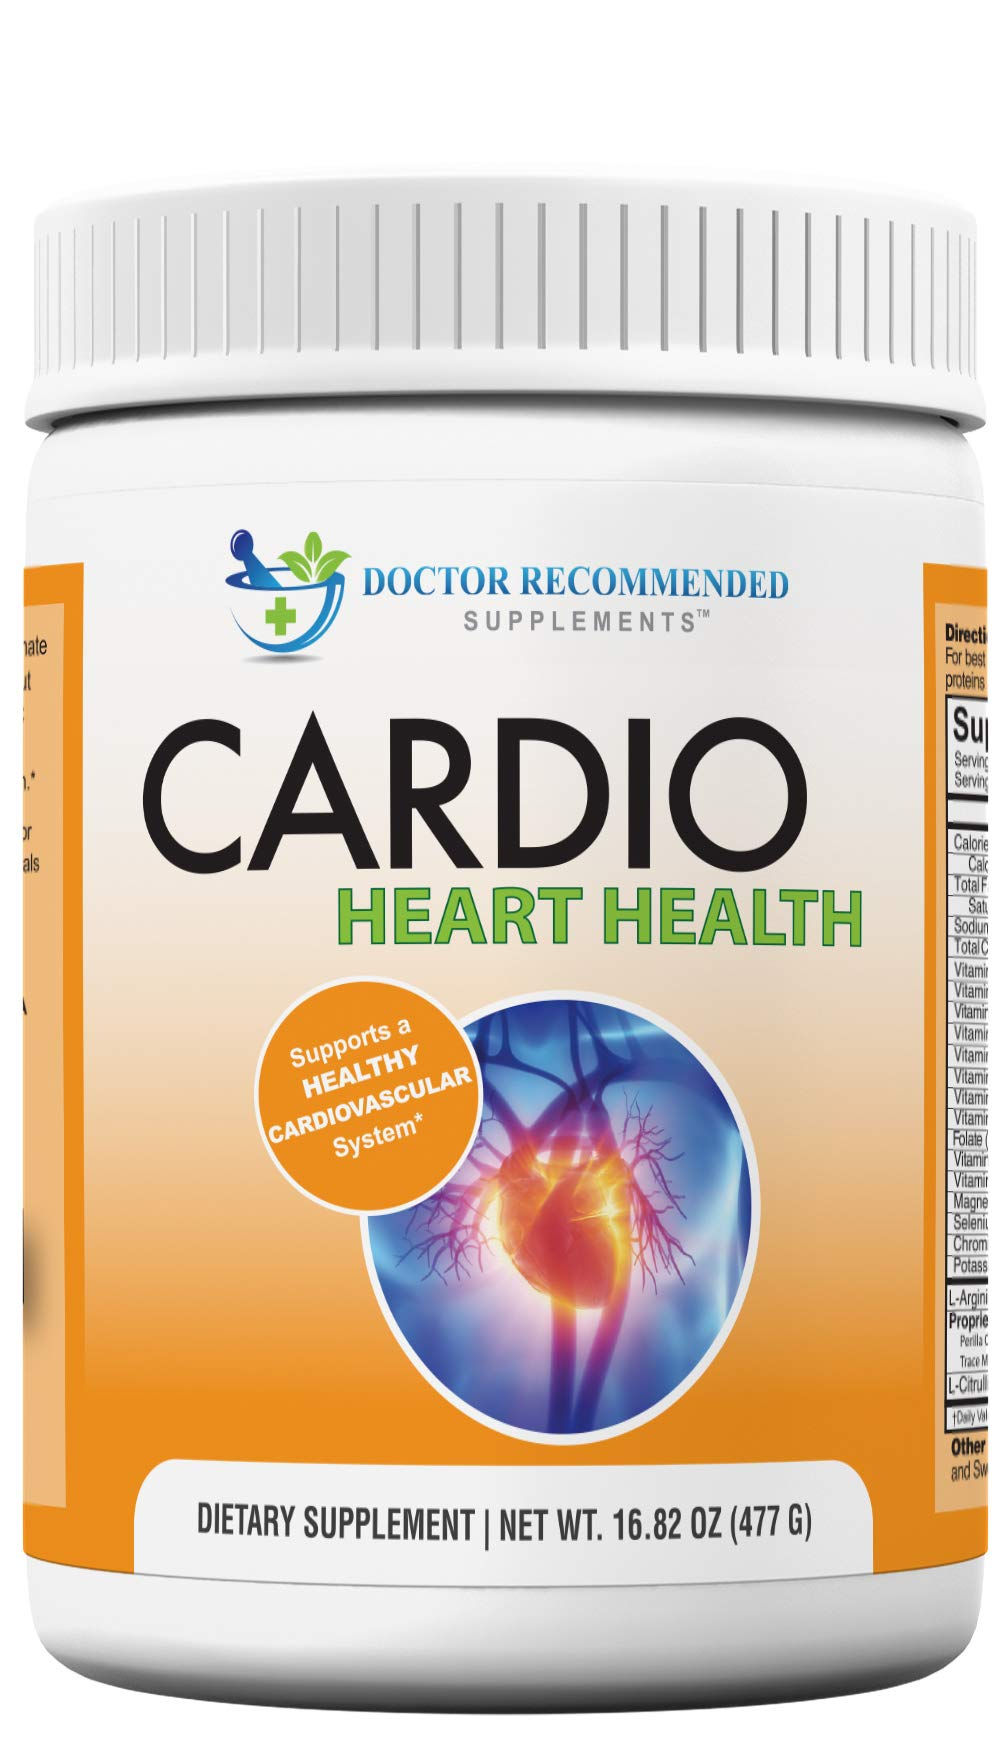 Cardio Heart Health Powder - L-Arginine Supplement 5000mg & L-Citrulline 1000mg,16.82 oz